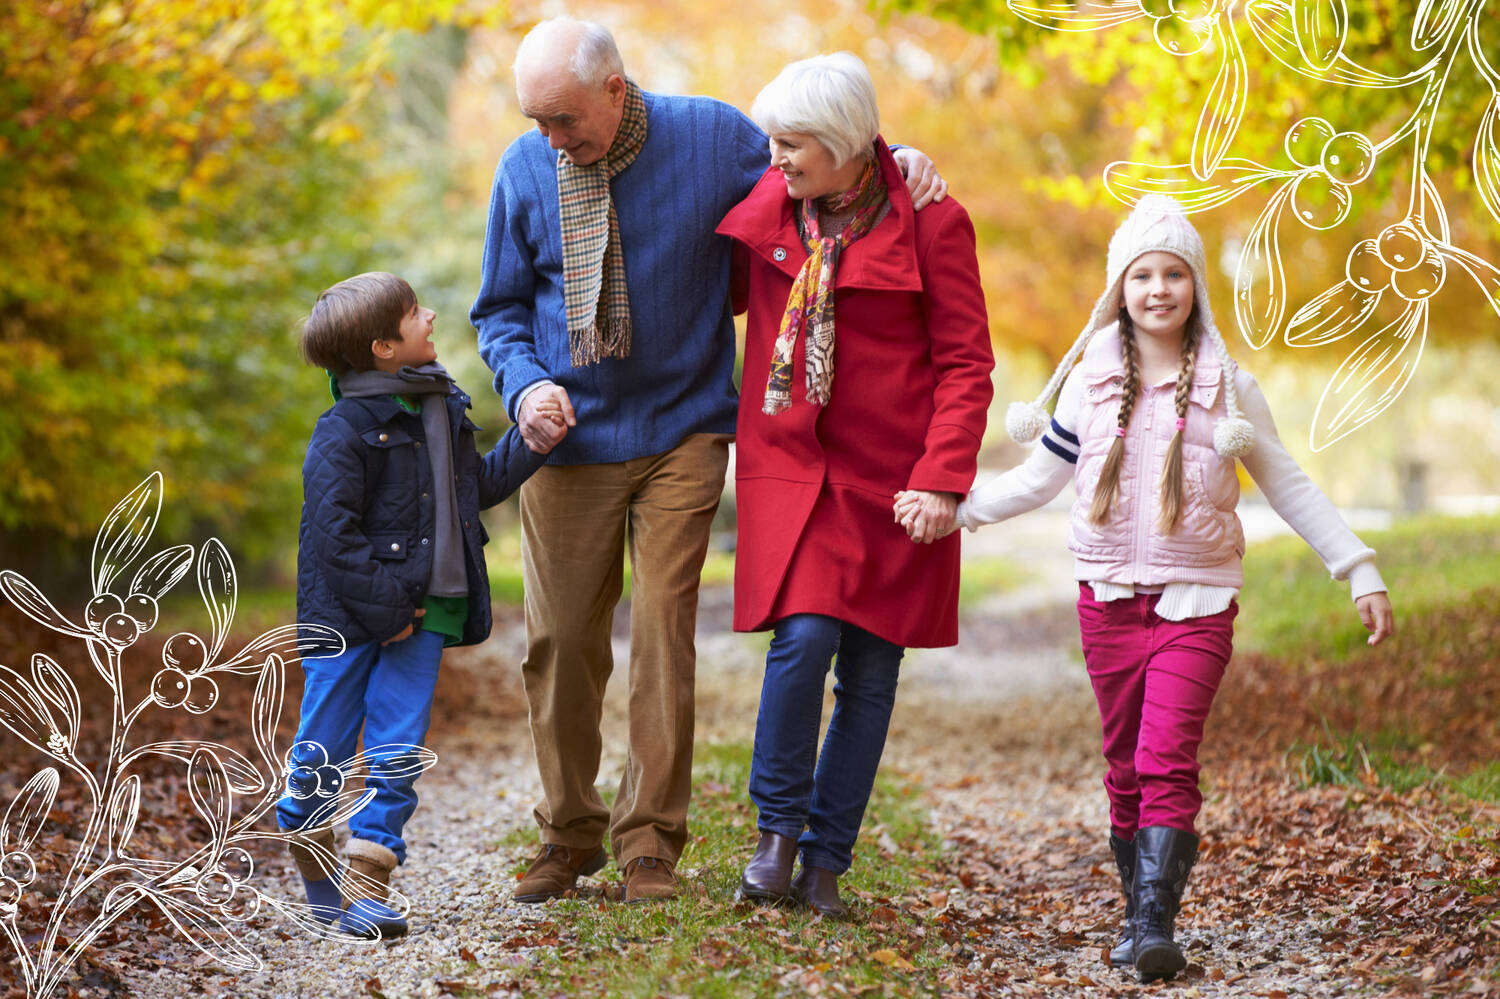 Two grandparents and their two grandchildren walk along a woodland path in autumn. They are smiling and holding hands with each other.